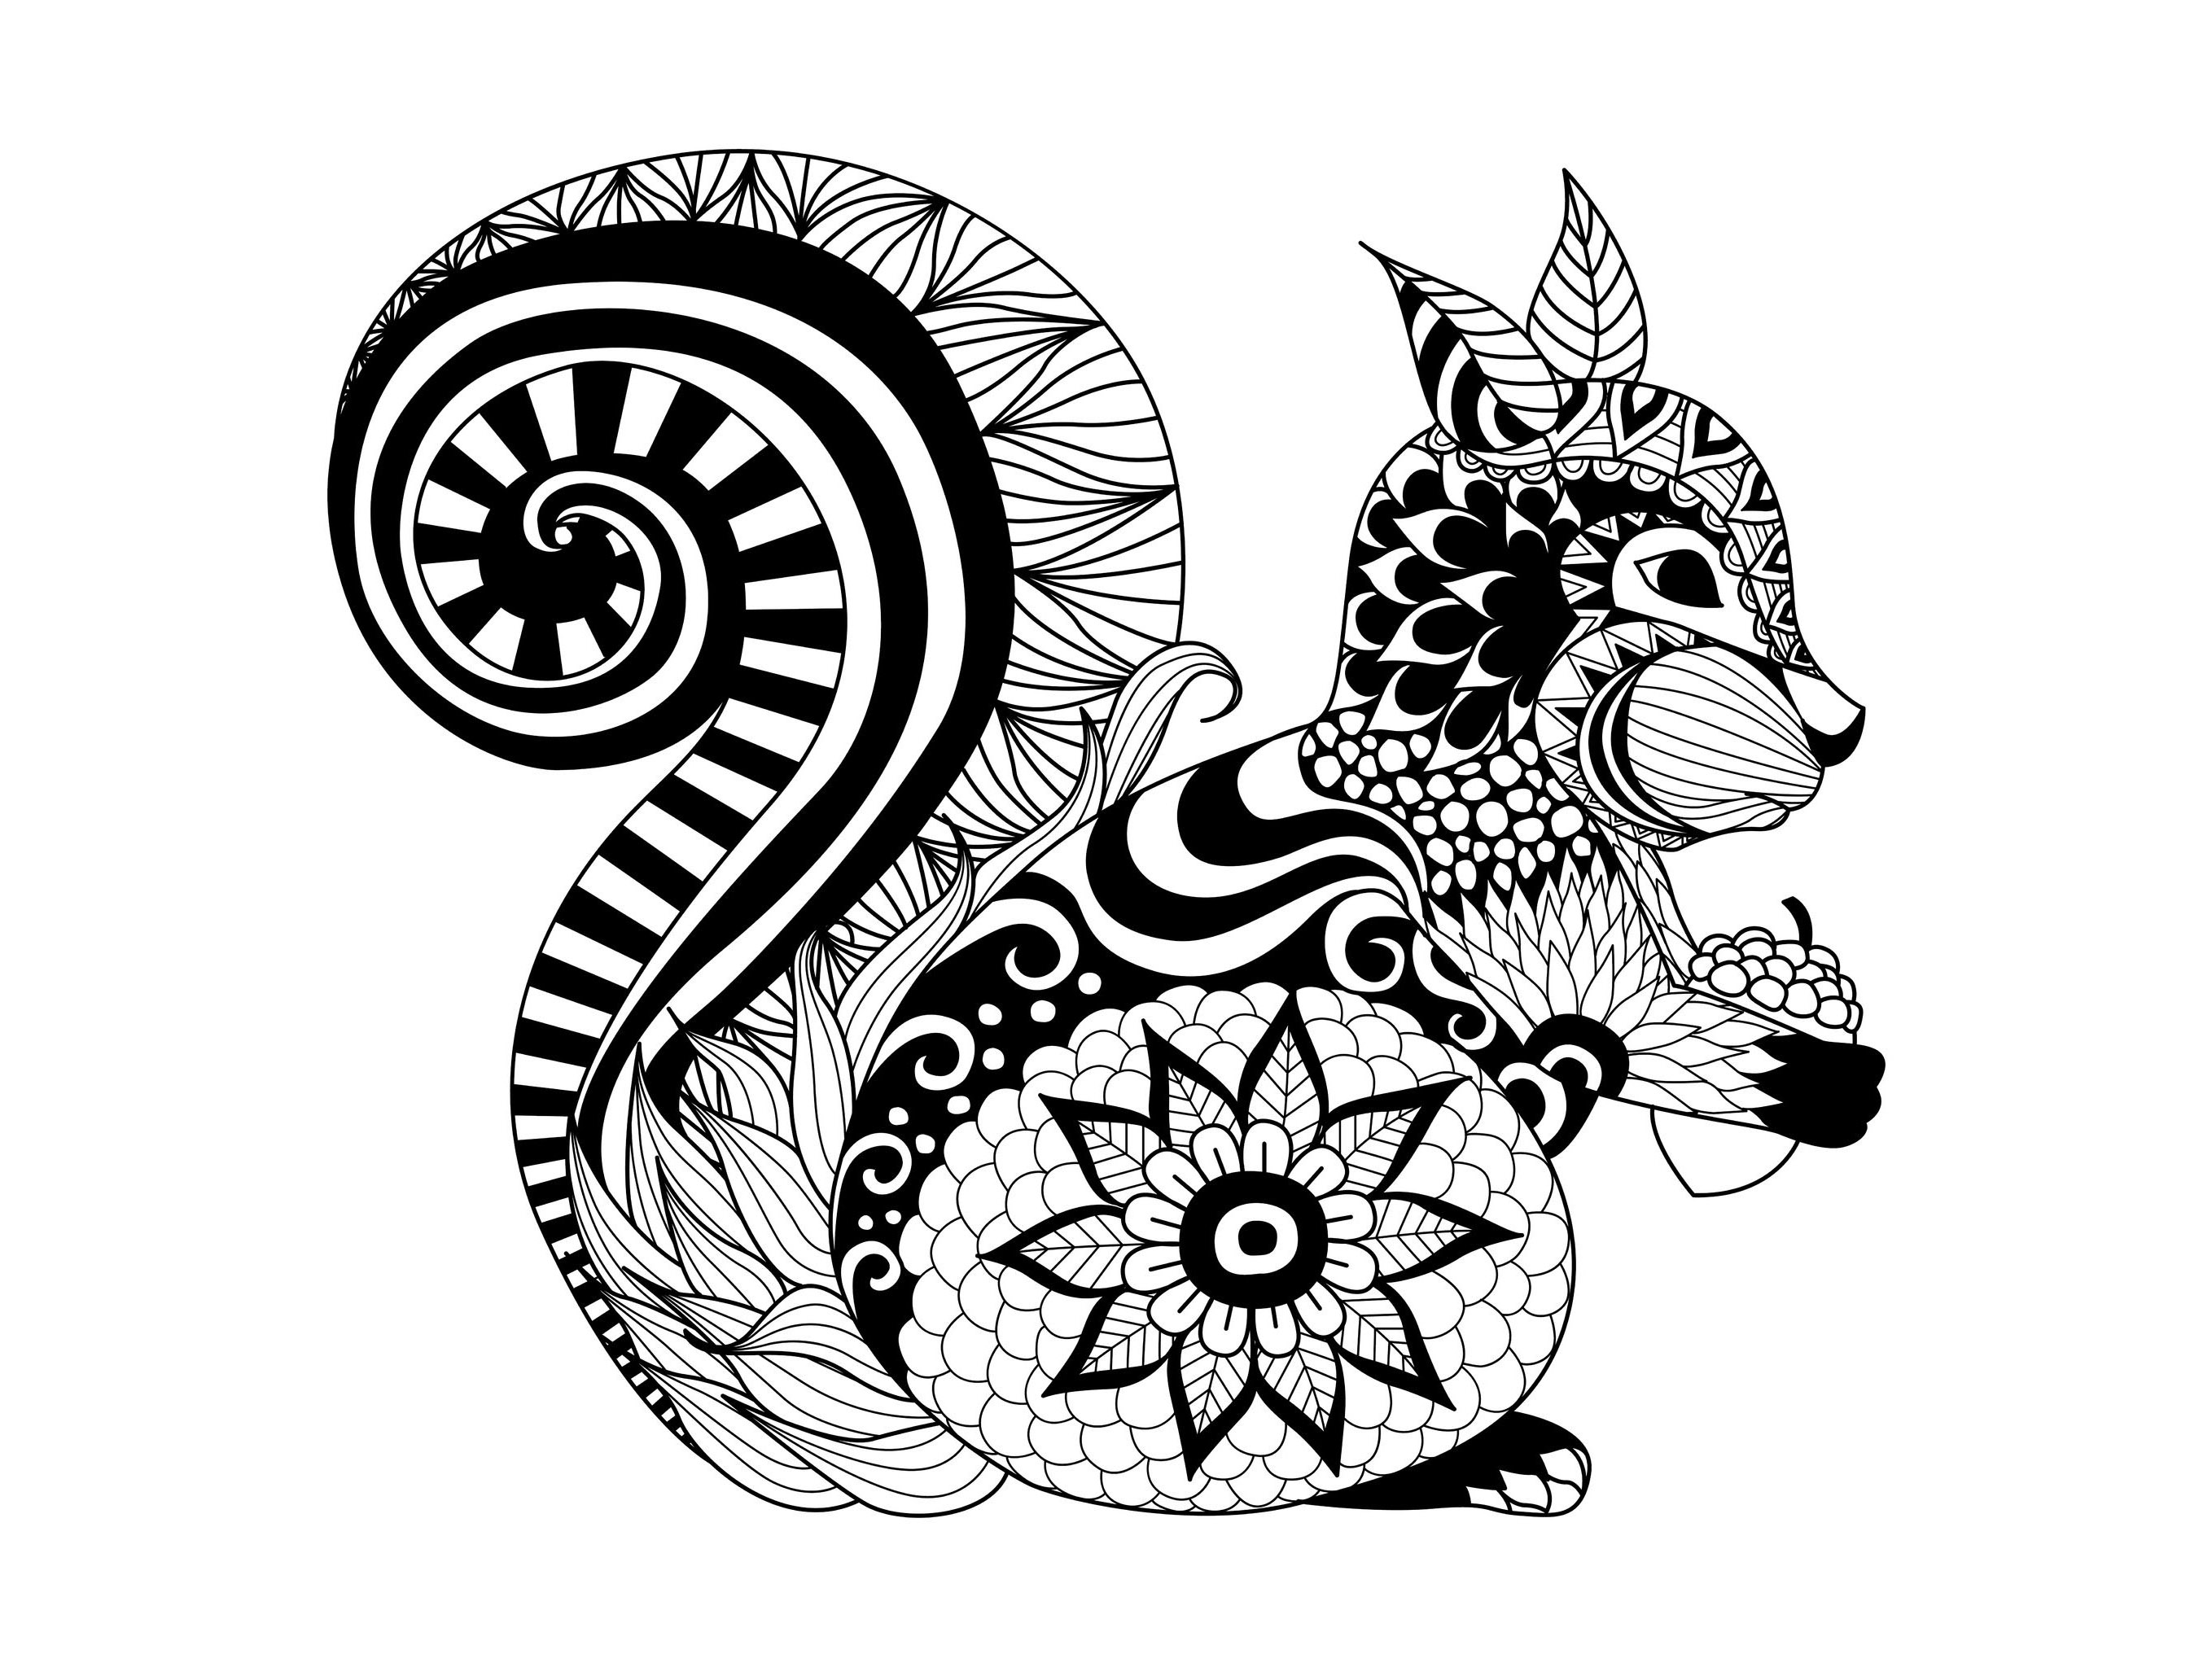 coloring pages zentangle zentangle coloring pages for adults coloring zentangle coloring pages zentangle